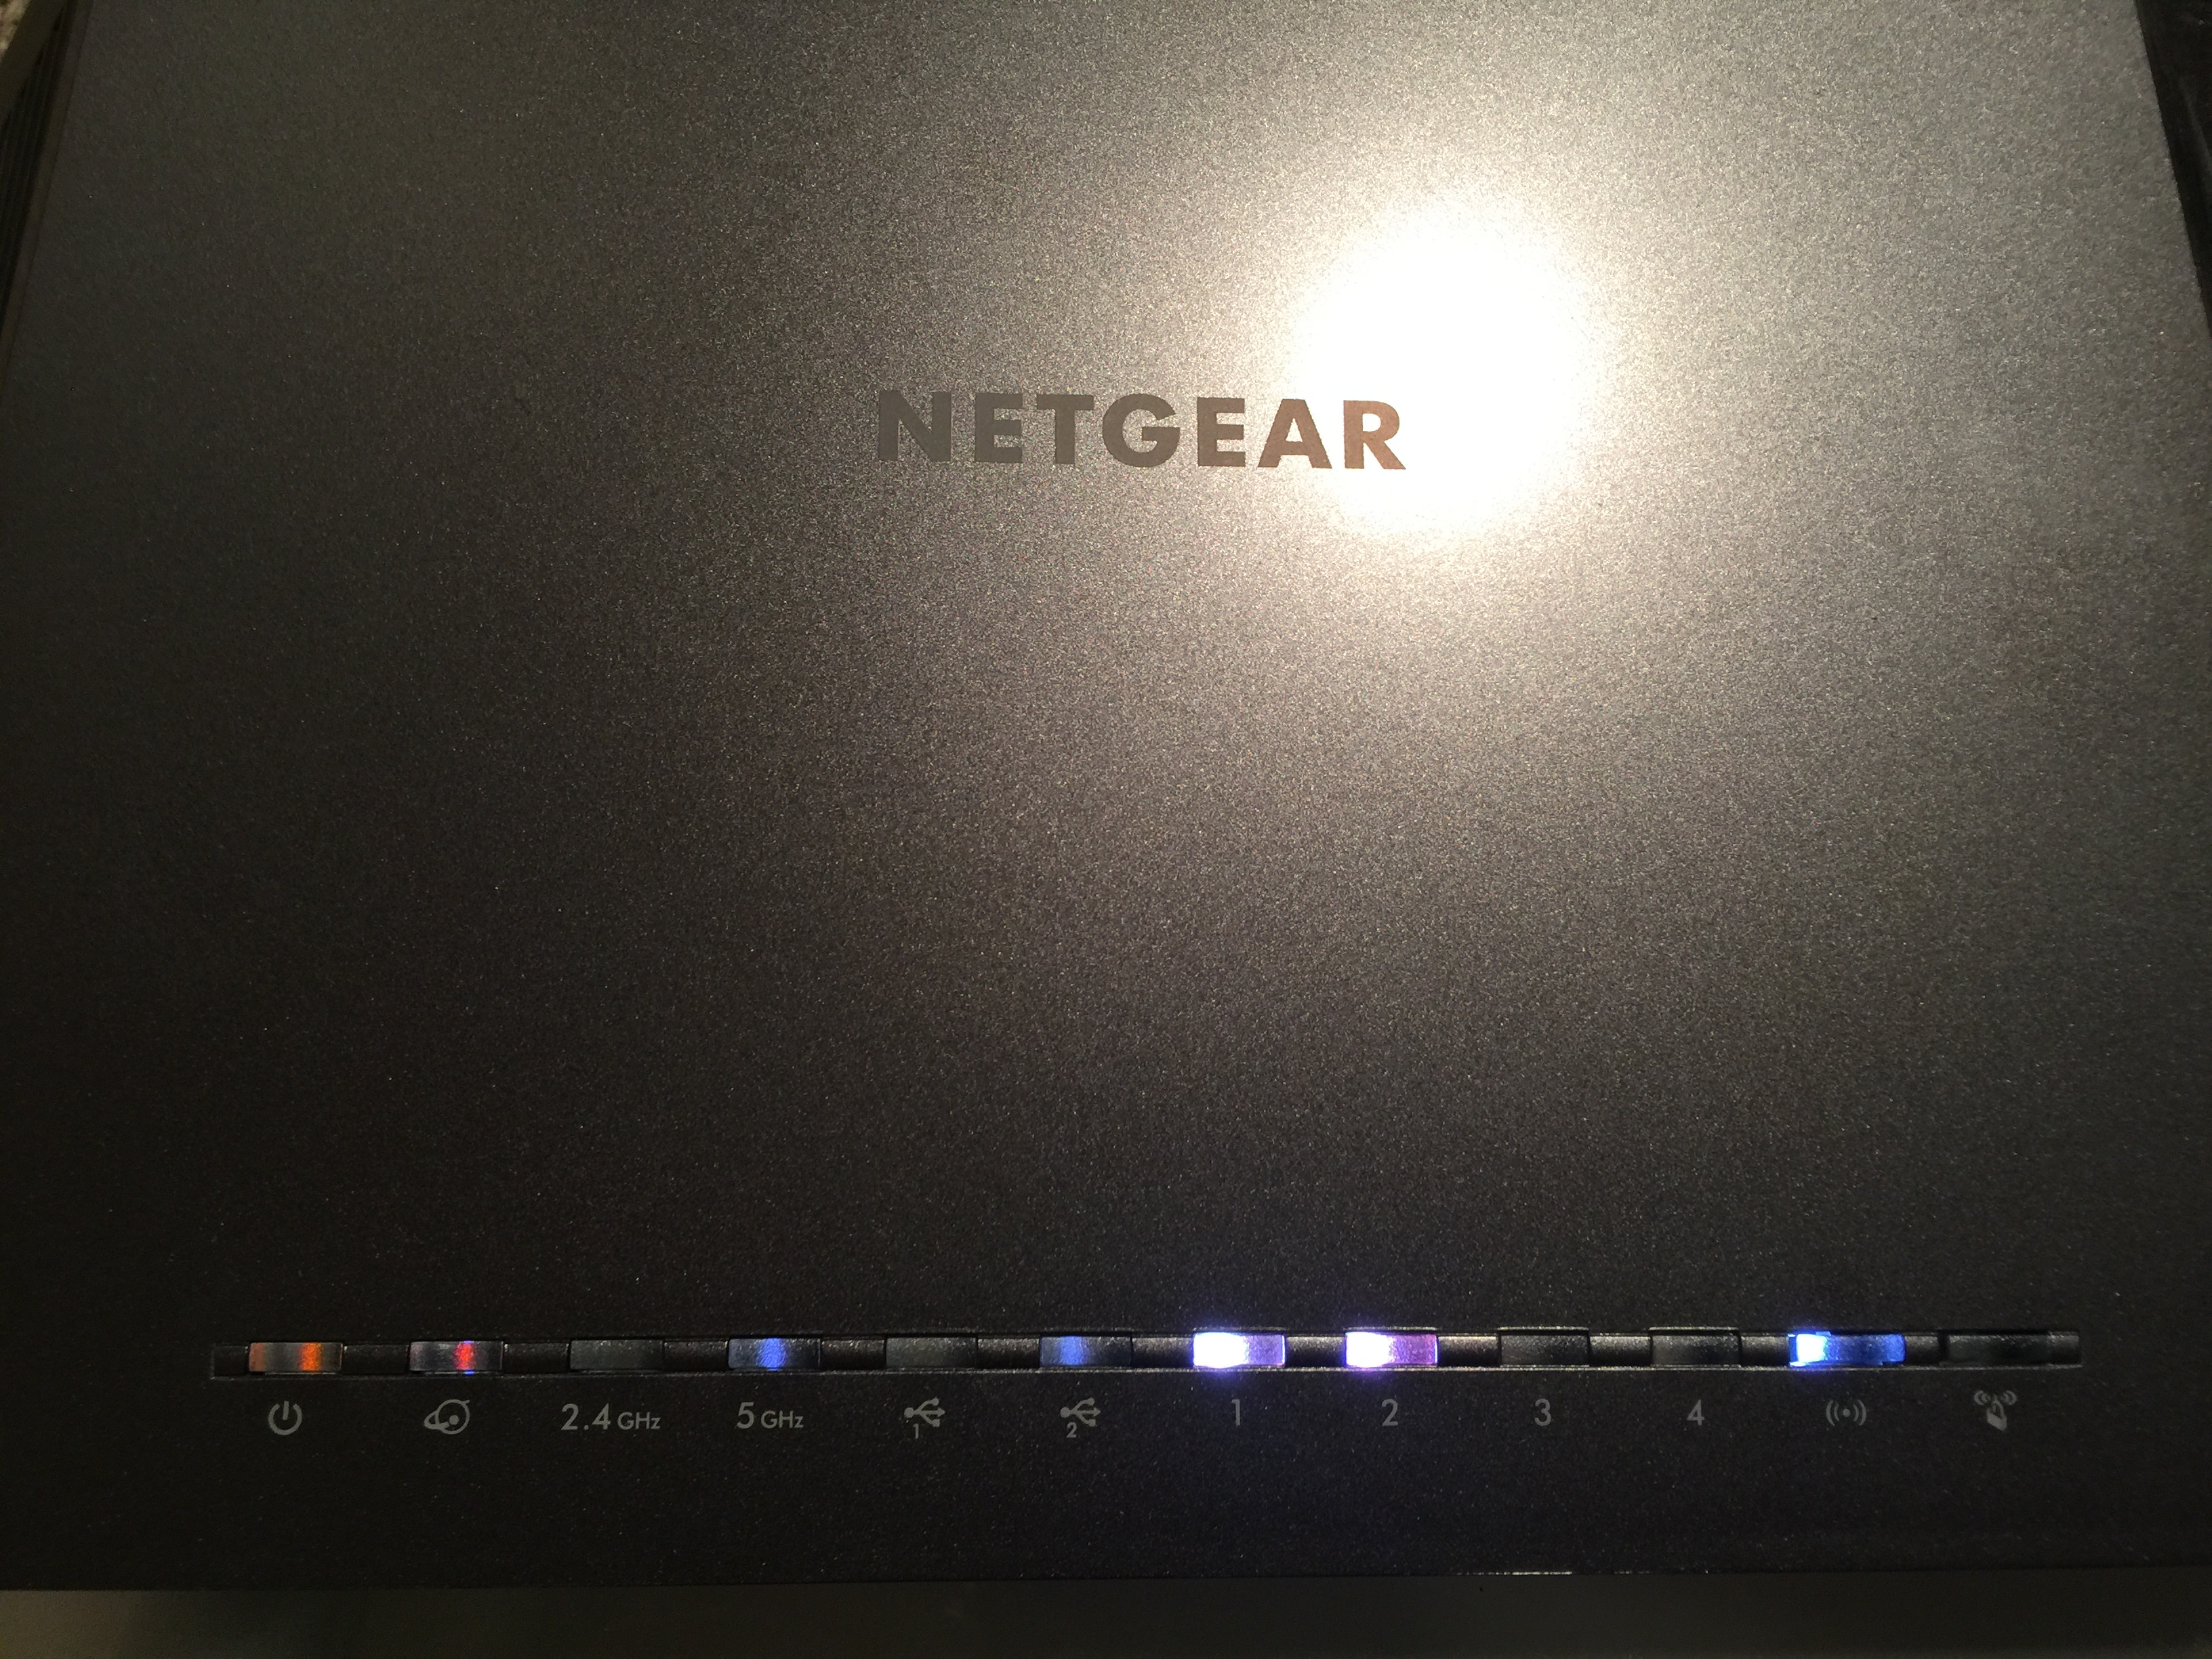 R7000 router not working at all, dim power light - NETGEAR